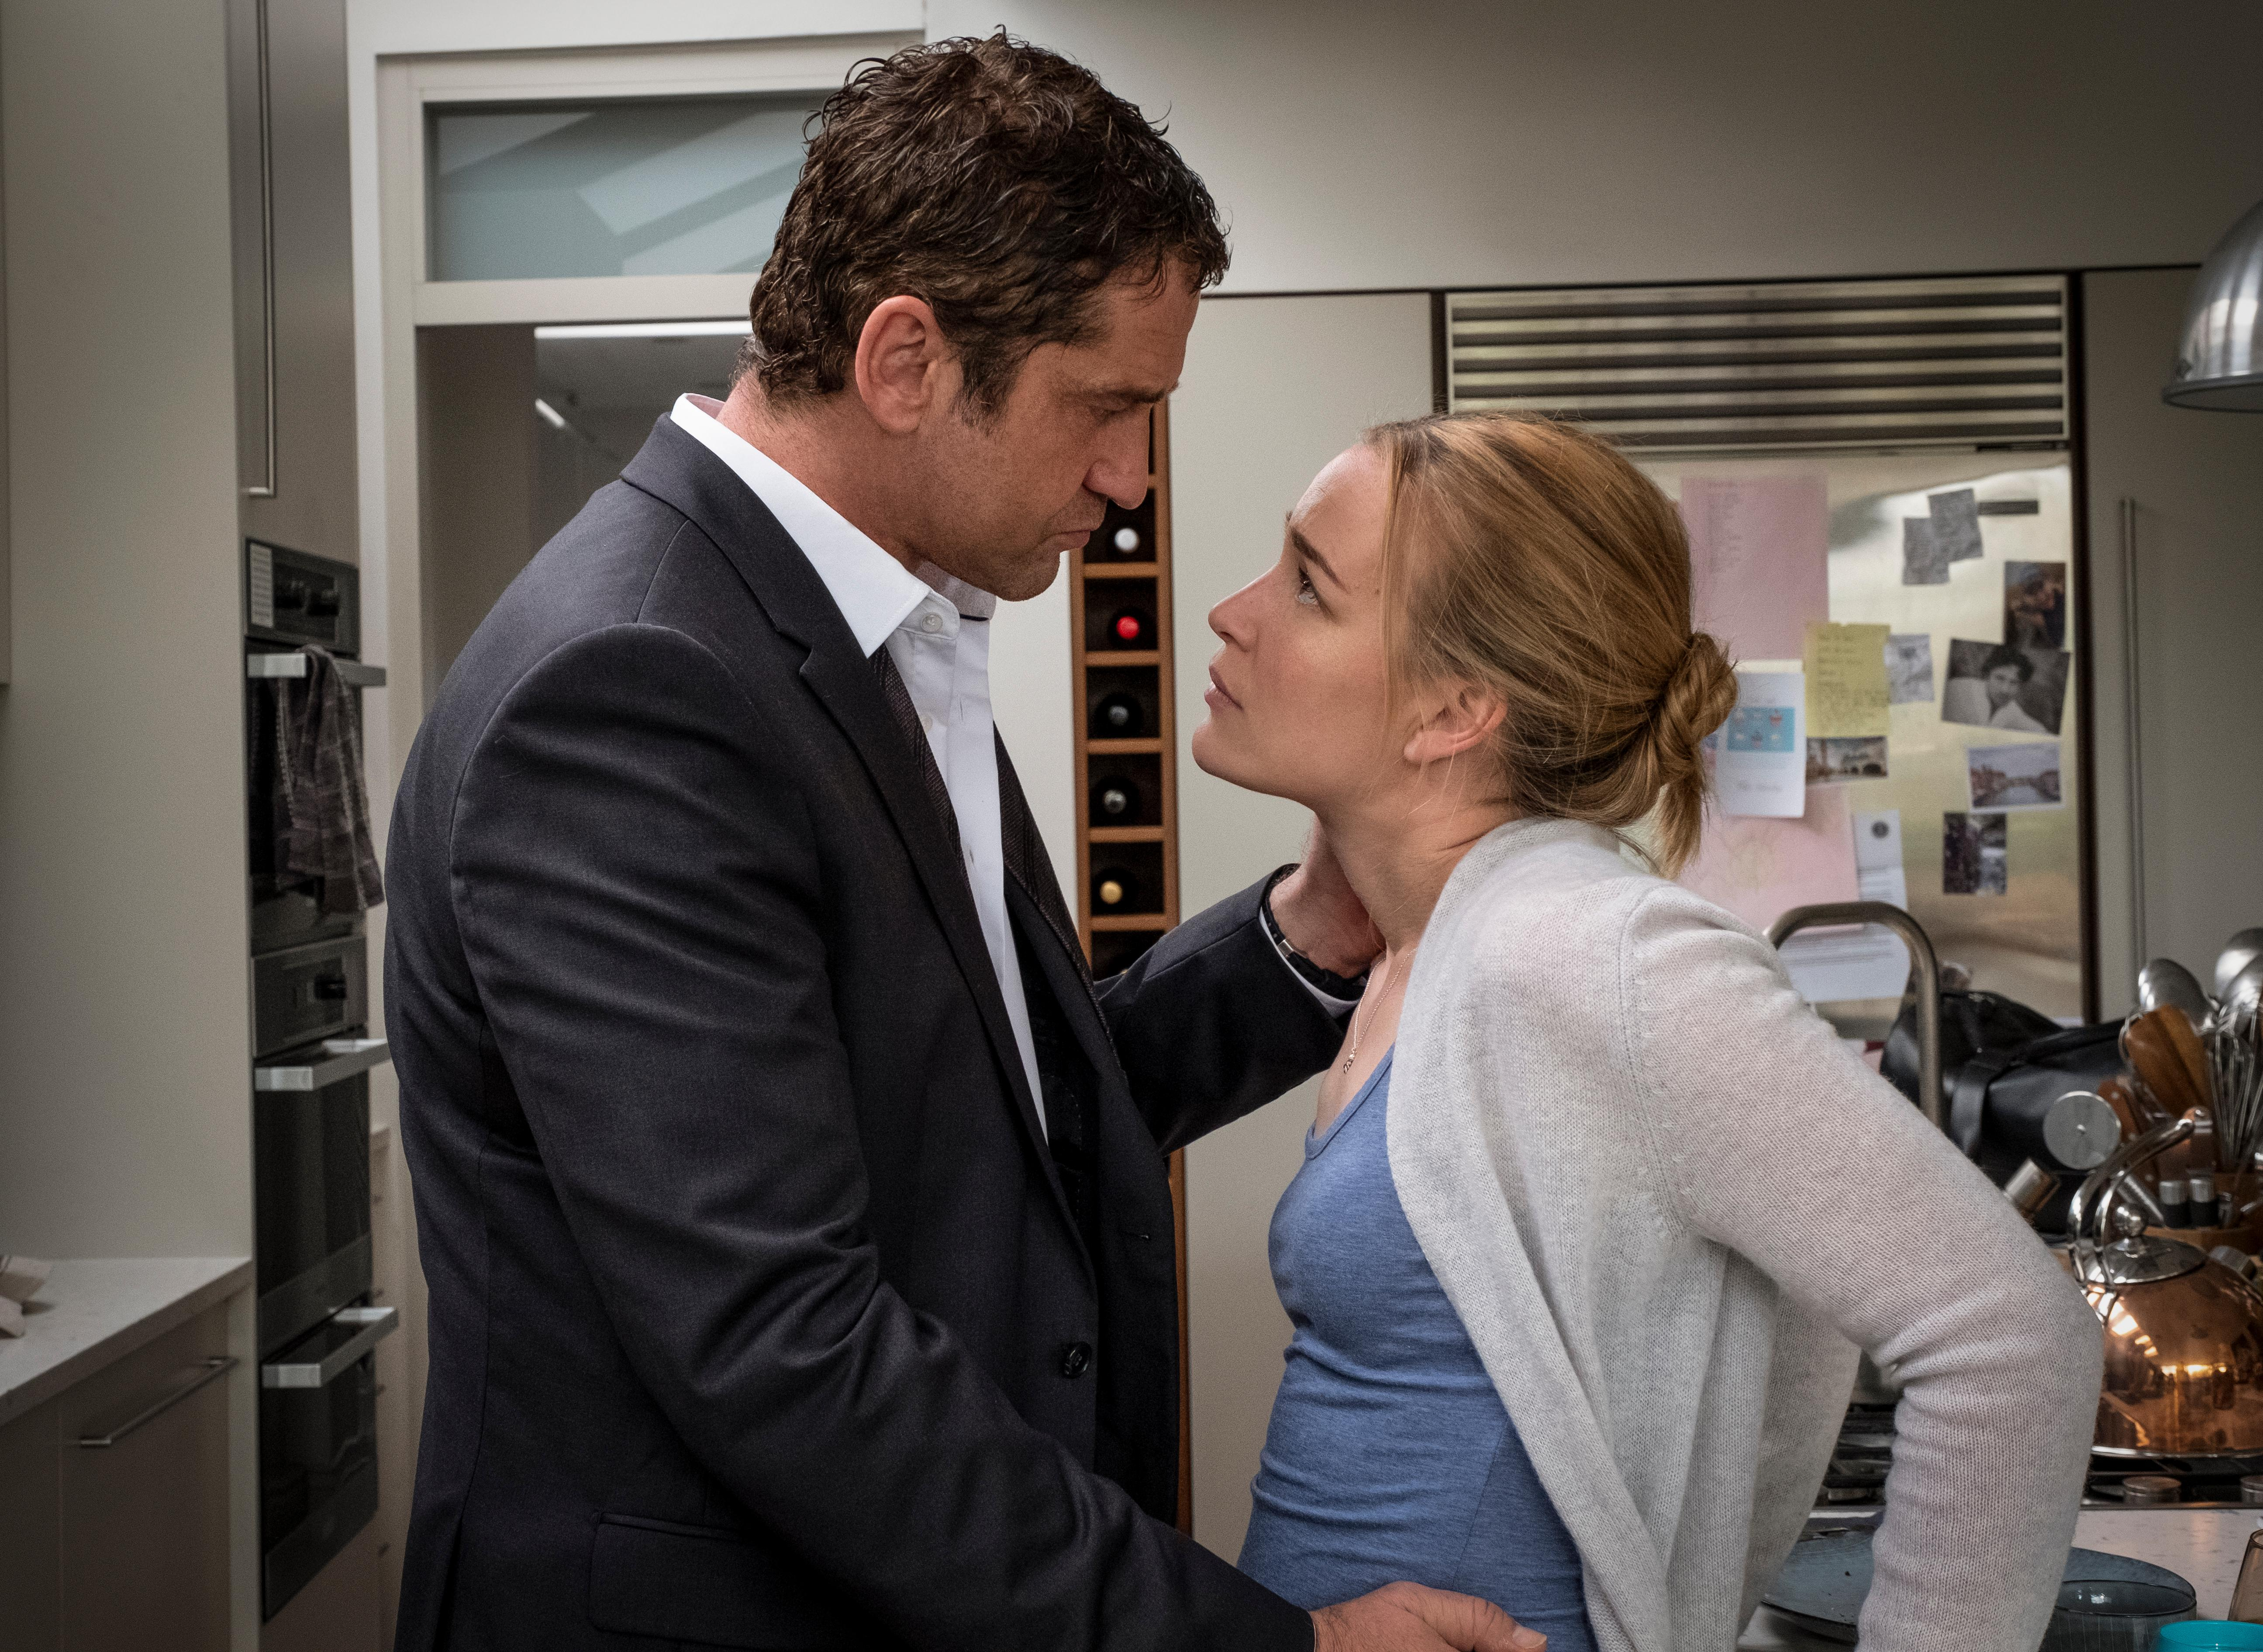 Gerard Butler 'Mike Banning' and Piper Parabo as 'Leah Banning' in ANGEL HAS FALLEN. (Photo Credit: Jack English)